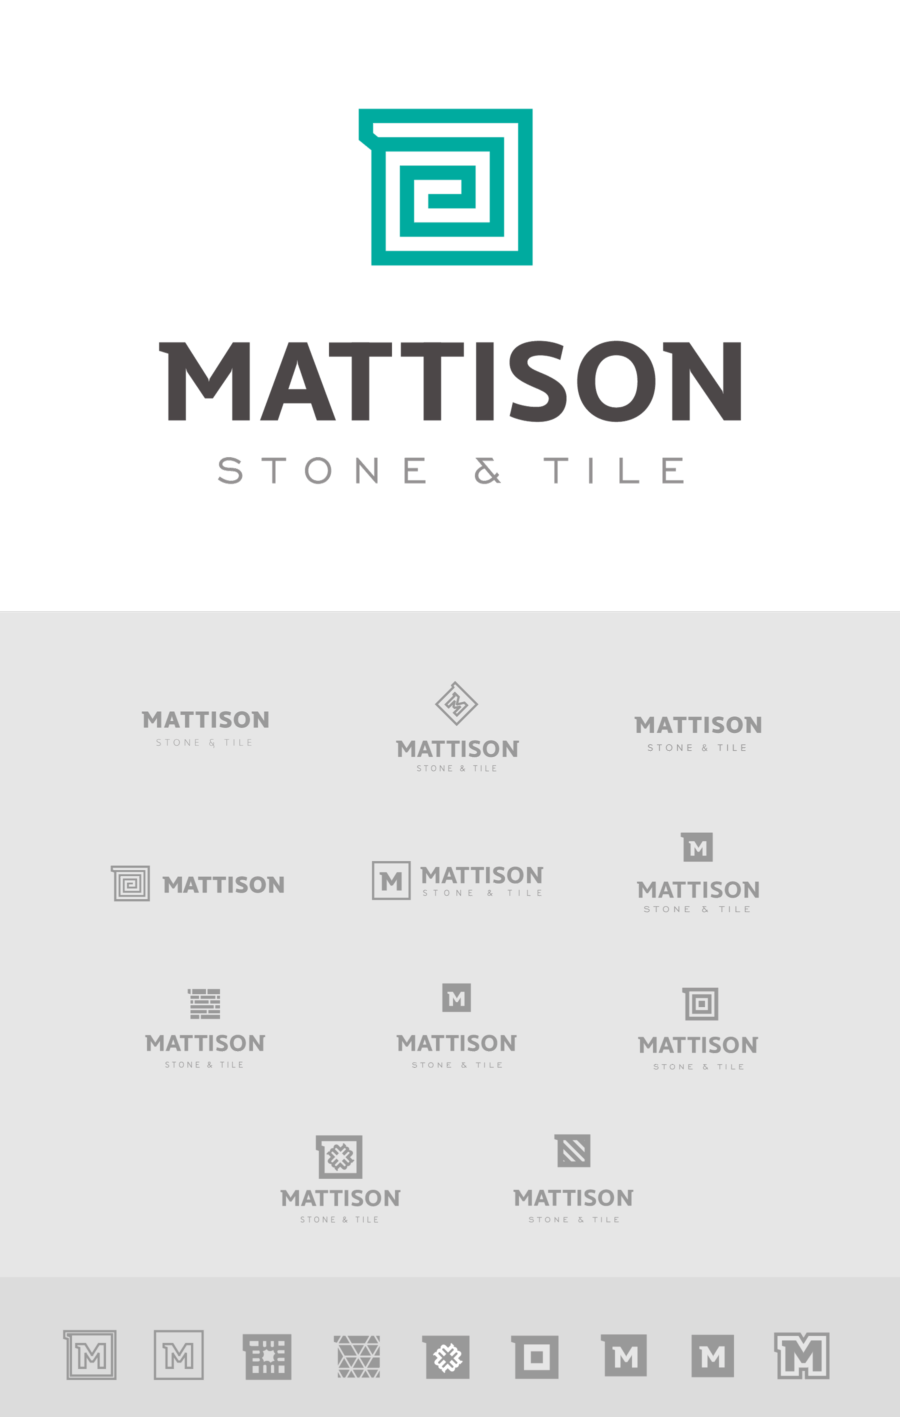 Mattison Logo Ideas